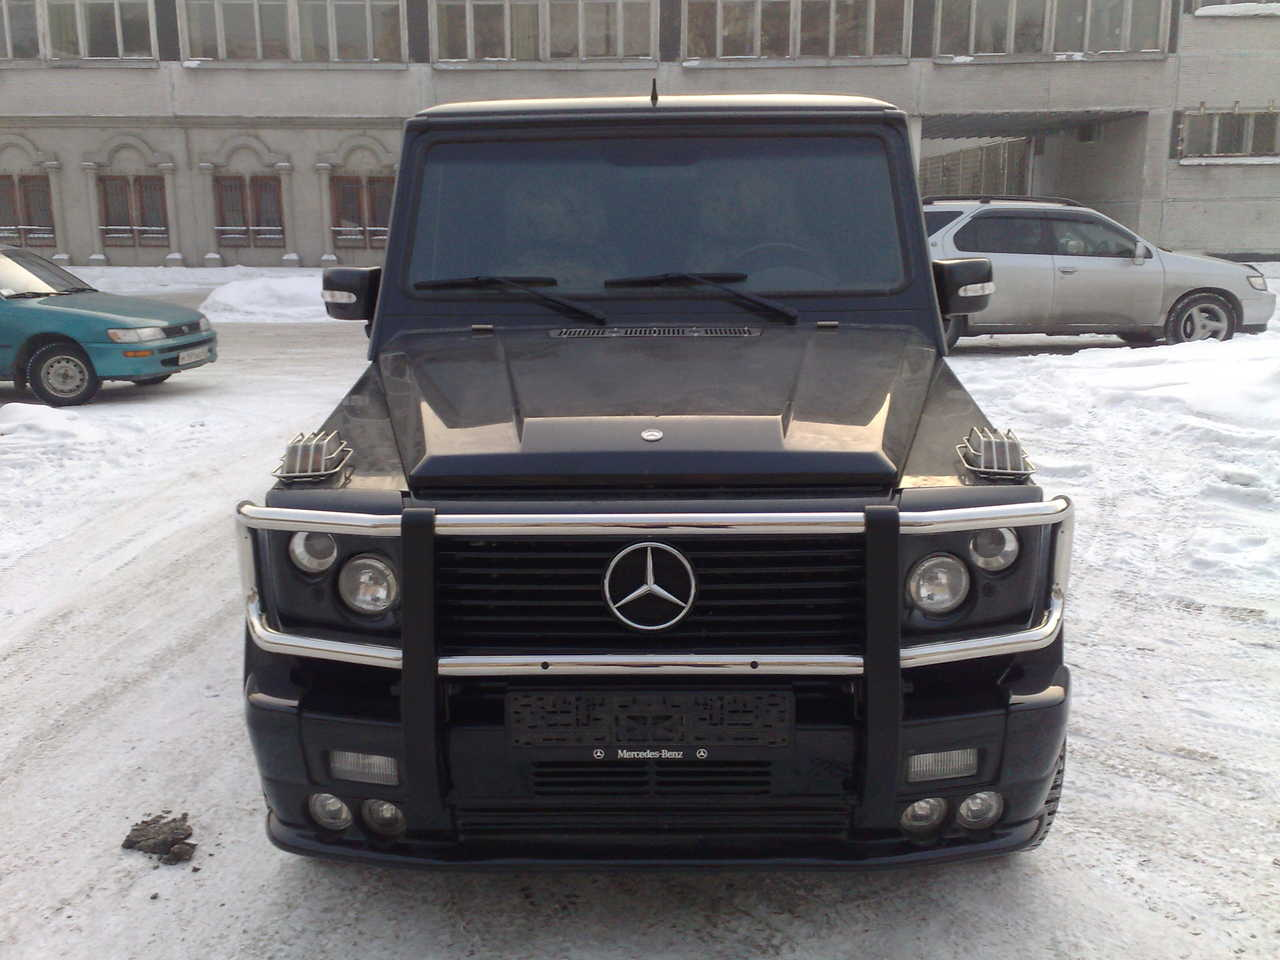 used 2001 mercedes benz g class photos 4000cc diesel automatic for sale. Black Bedroom Furniture Sets. Home Design Ideas